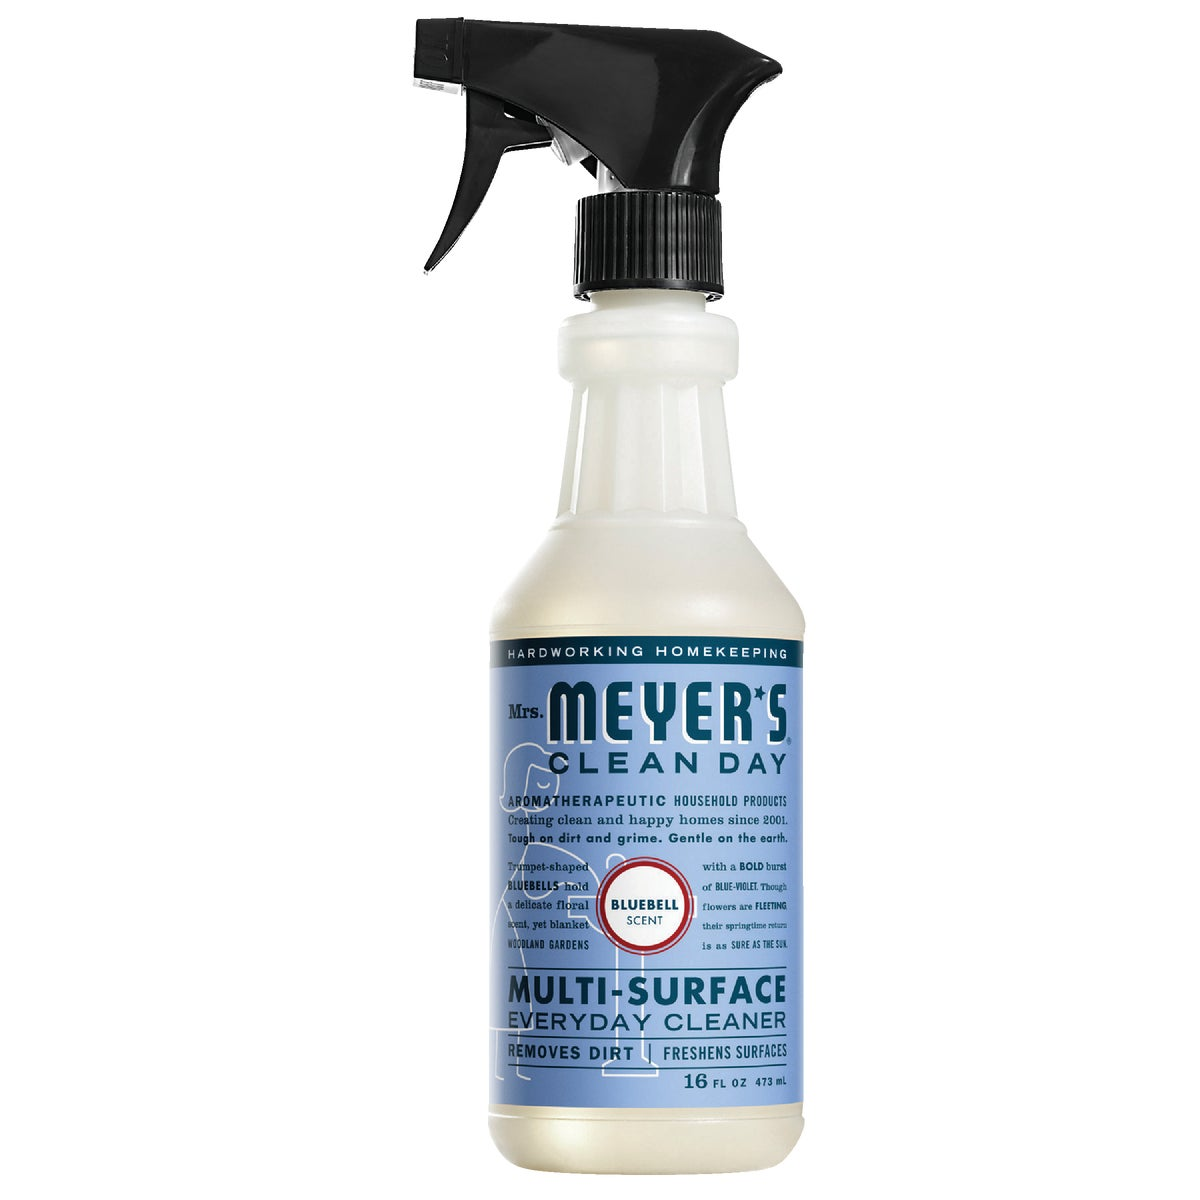 BLUBEL EVERYDAY CLEANER